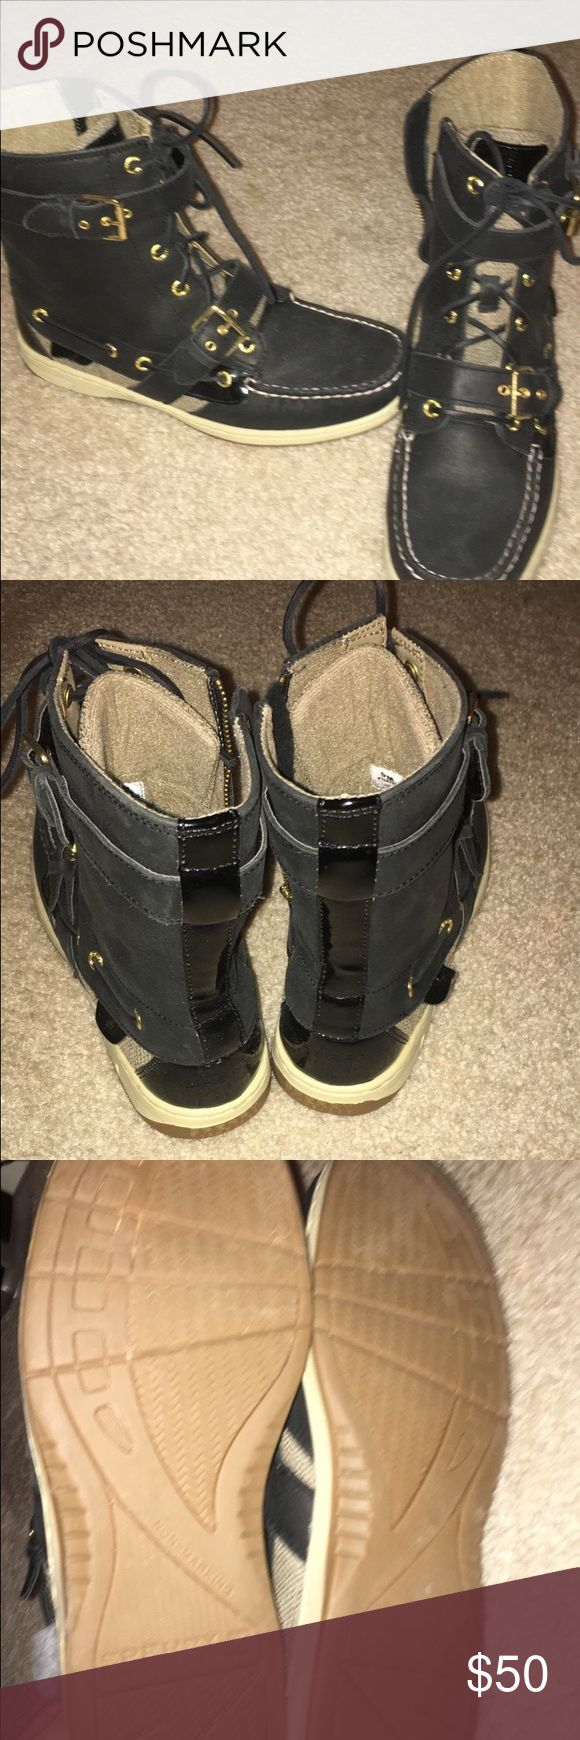 Black sperry boots Never worn but no tags Sperry Top-Sider Shoes Combat & Moto Boots